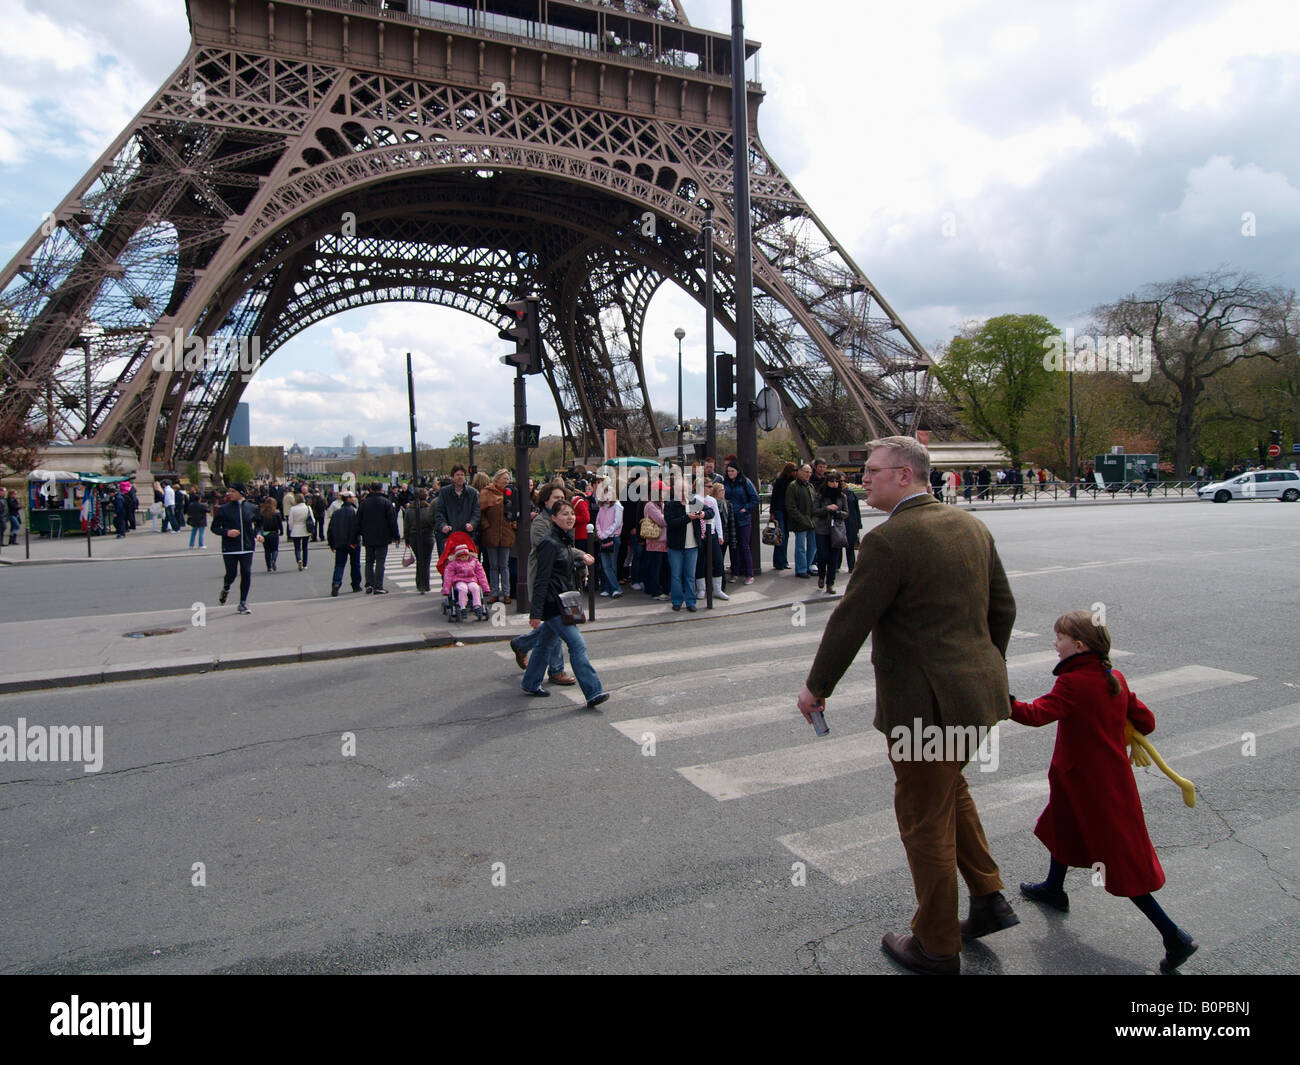 People tourists crossing the street near Eiffel Tower Paris France - Stock Image